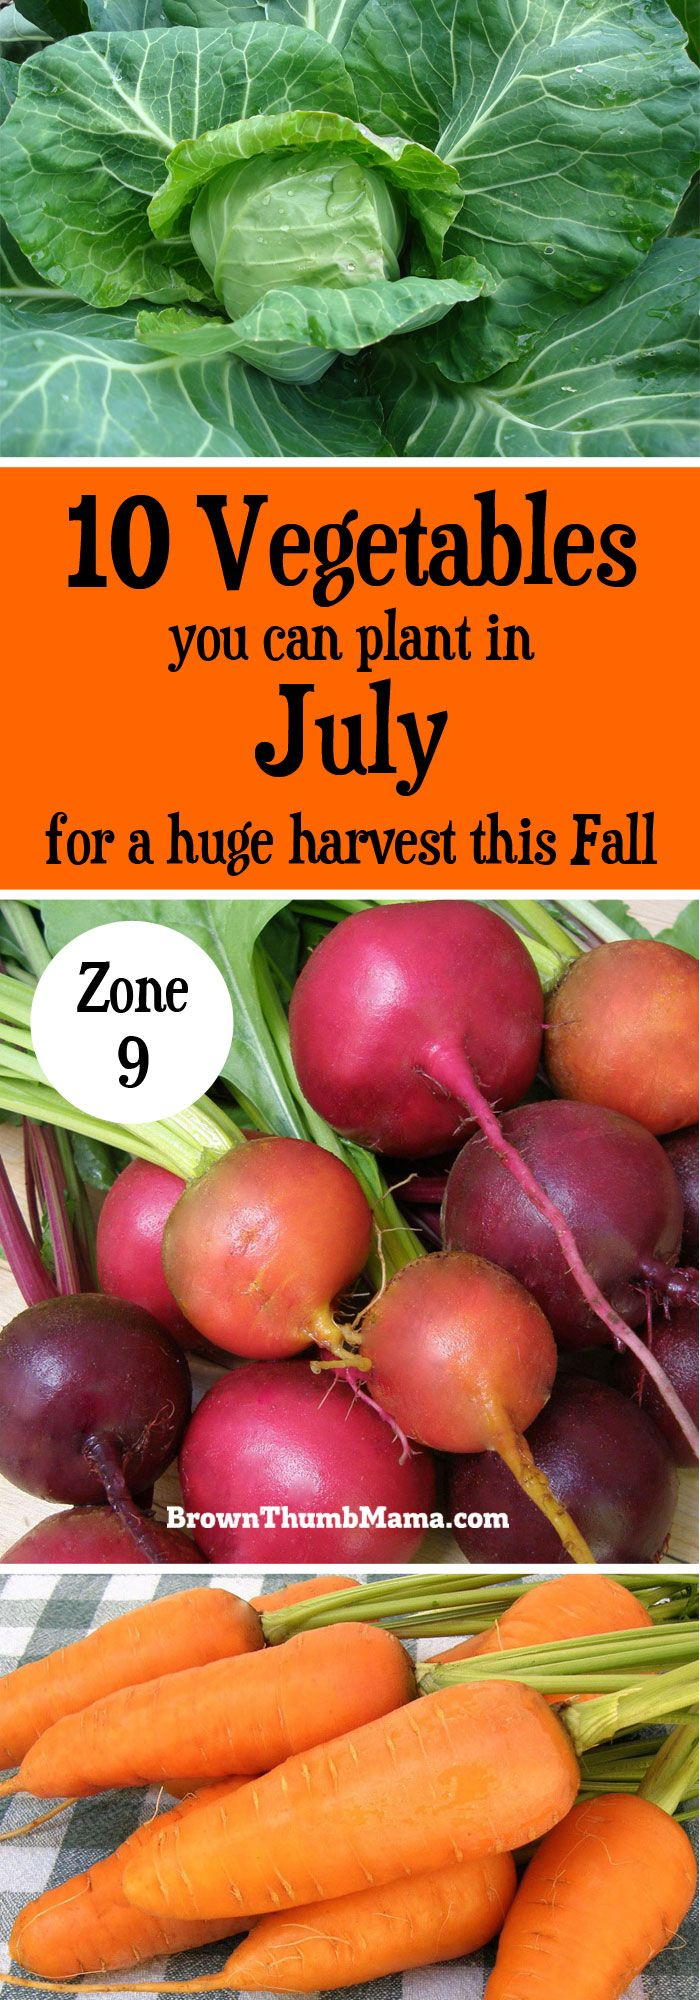 10 Vegetables to Plant in July {Zone 9}